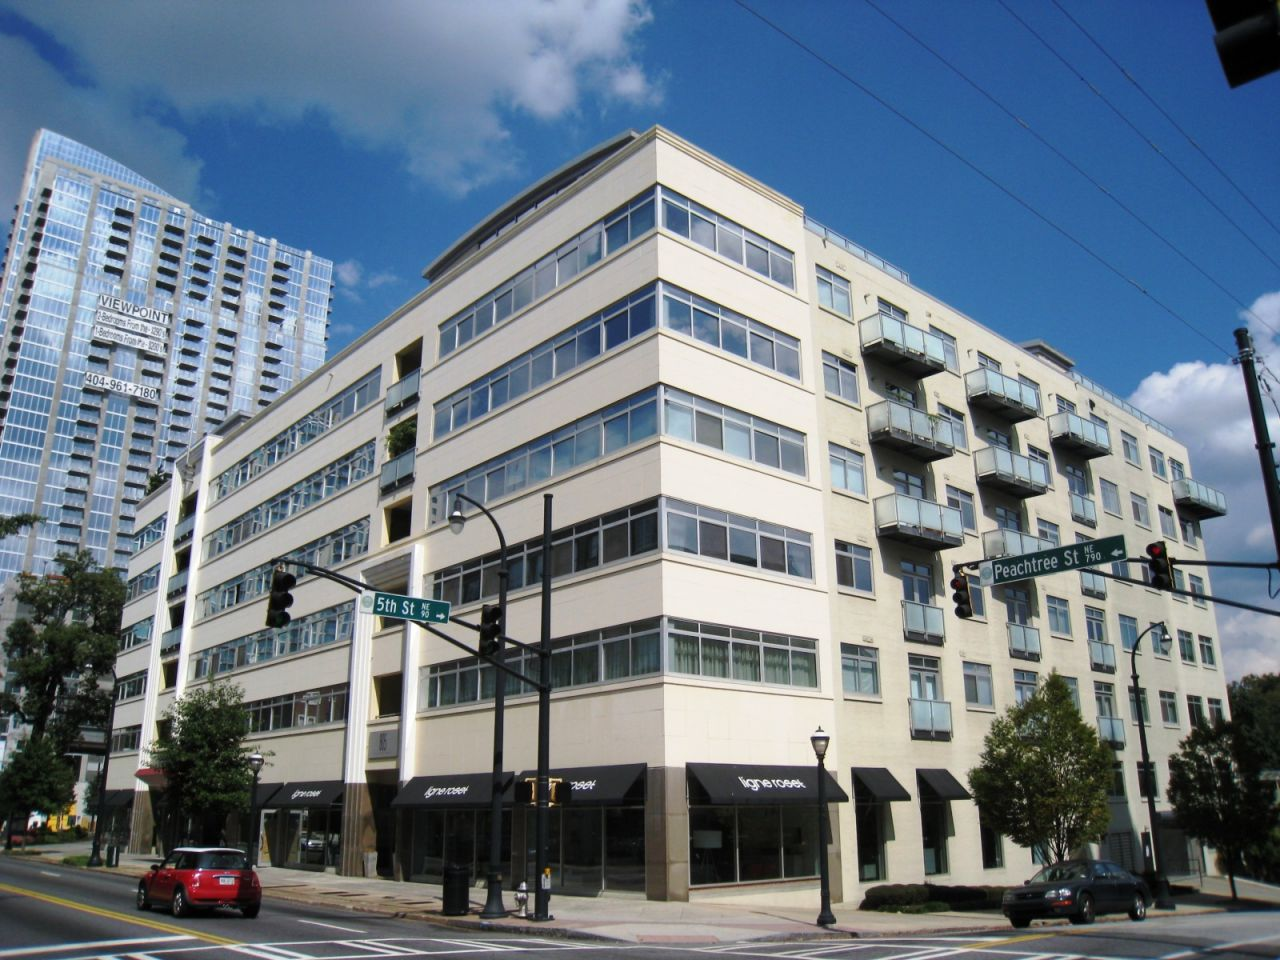 805 peachtree condominiums search 805 peachtree for The peachtree